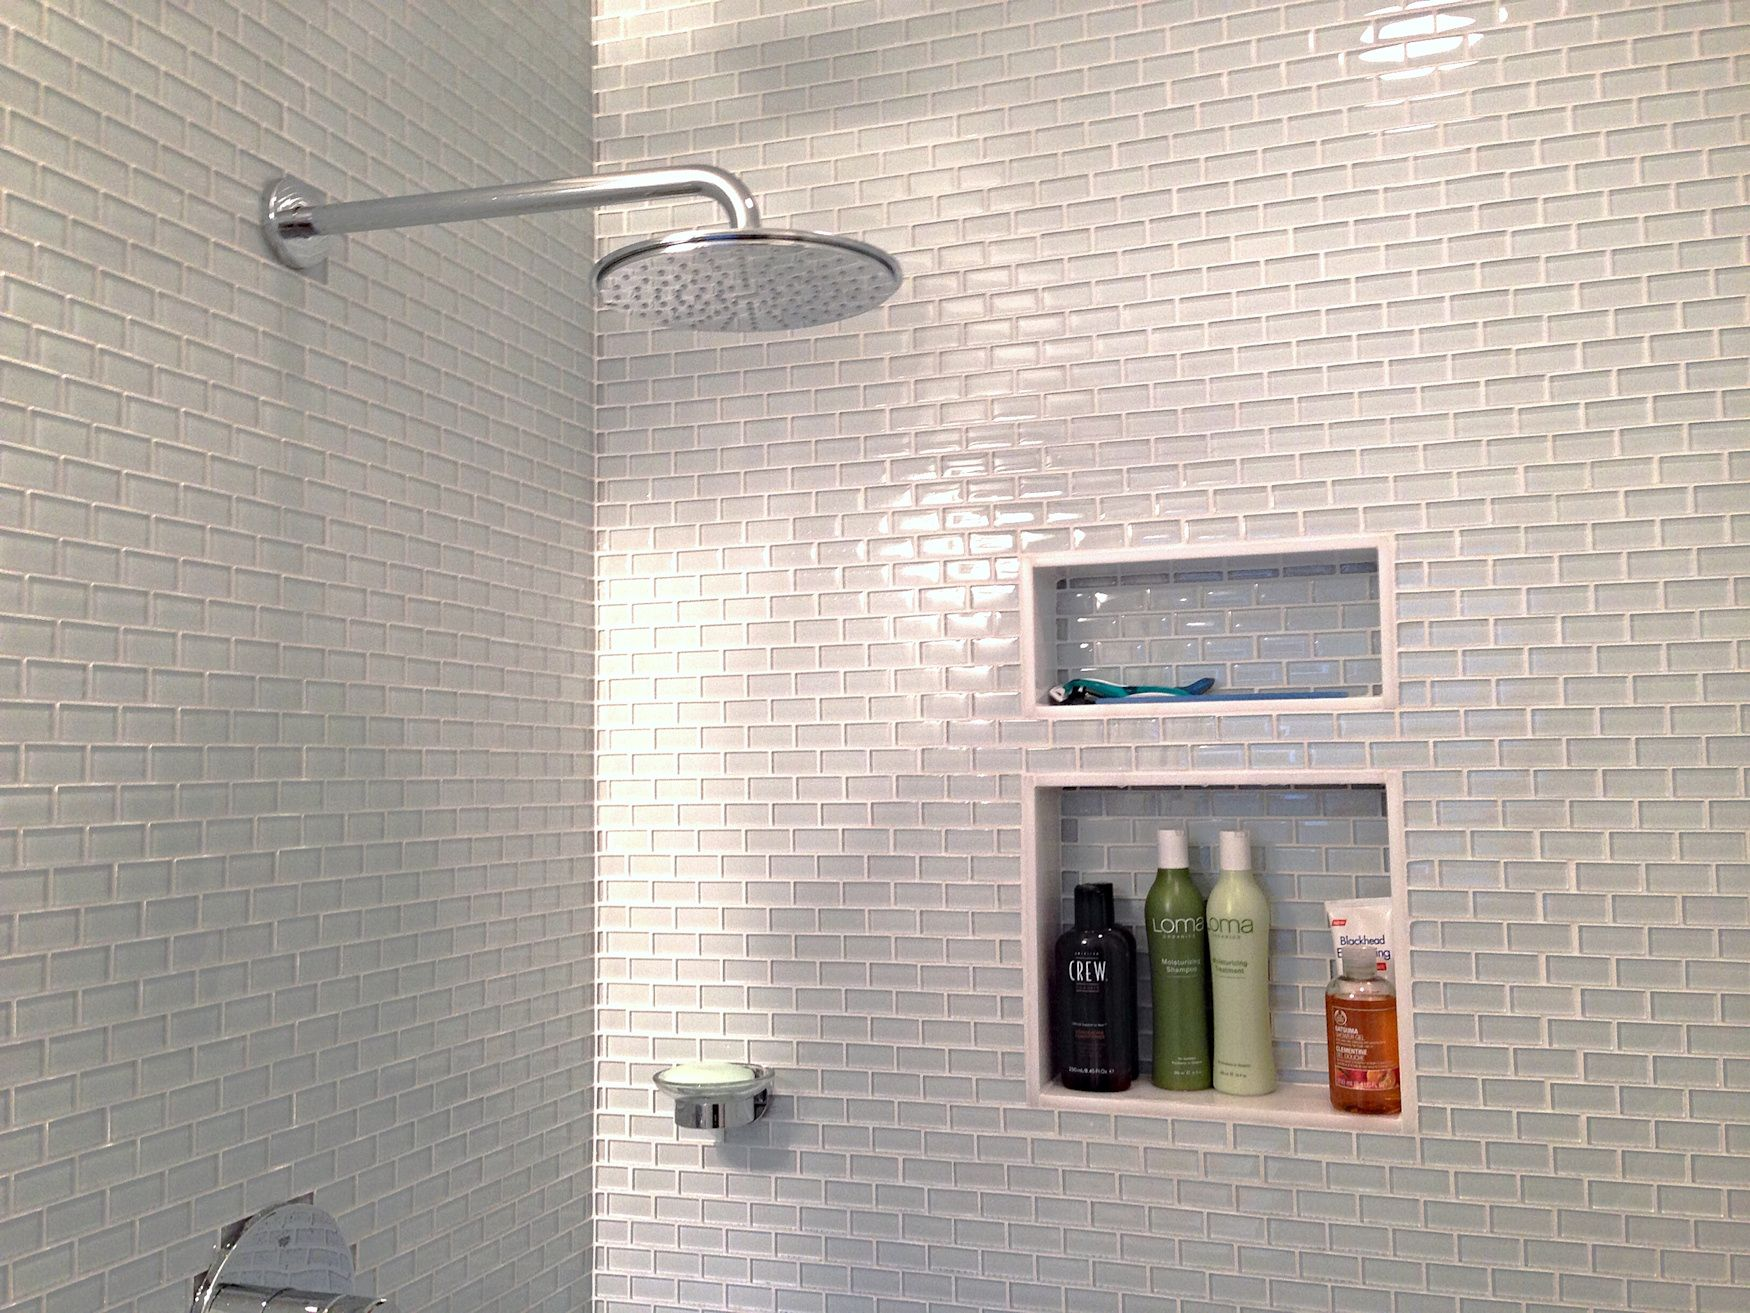 Tilebathroom Excellent Bathroom Subway Tile Http Goo Gl